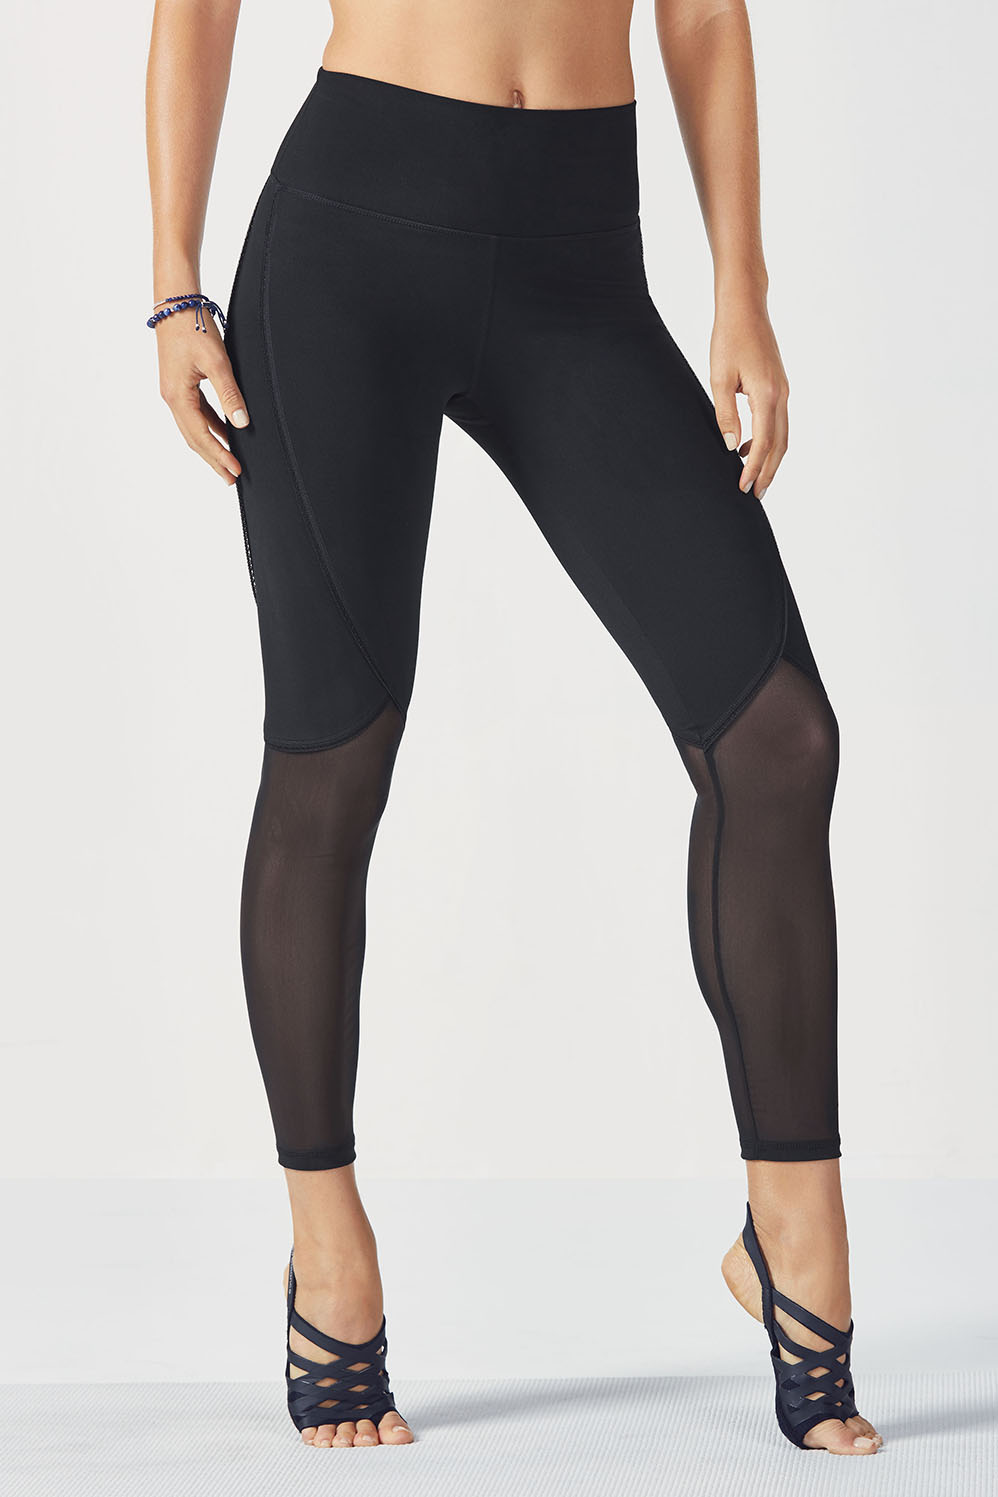 7a6fcbec31272b High-Waisted Mesh PowerHold® 7/8 - Fabletics